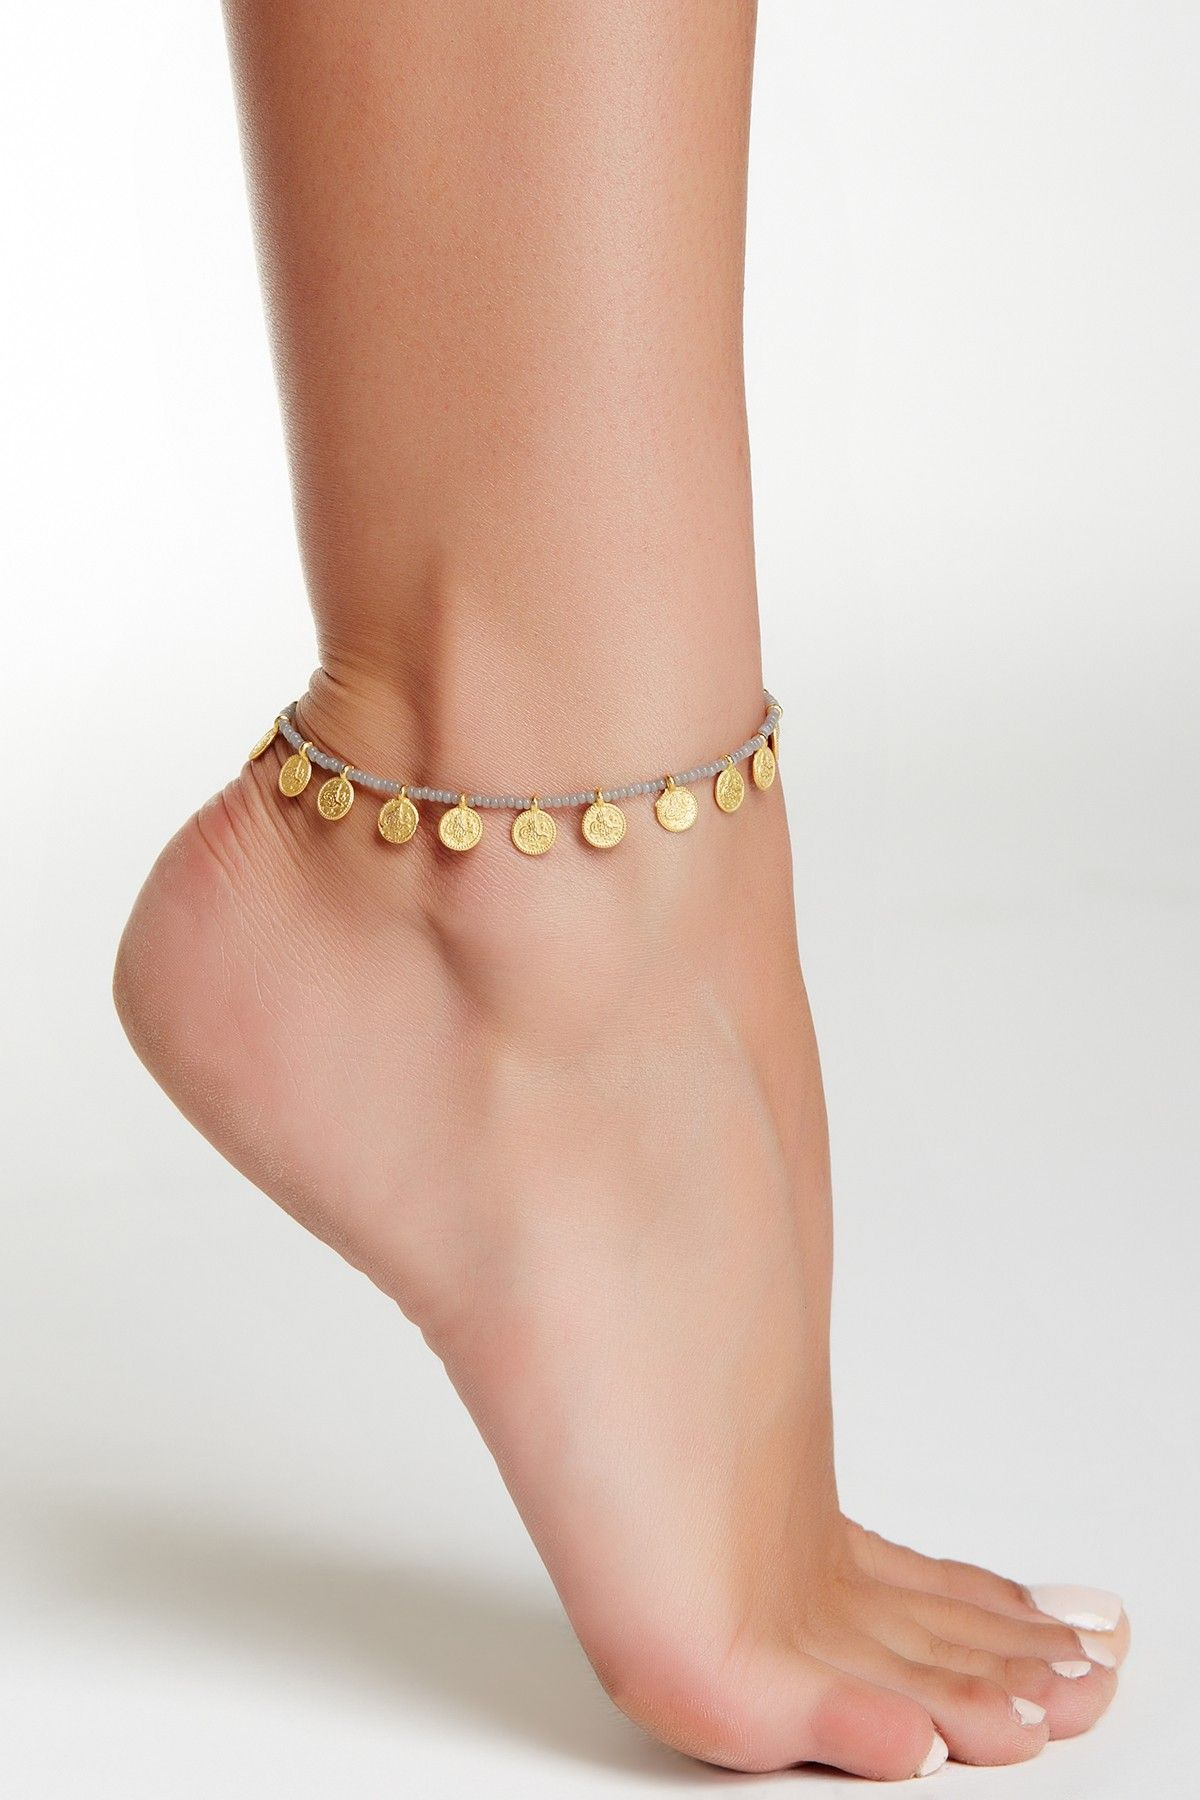 Barefoot Gold Plated Flowers Charm Anklet Rhinestone Ankle Bracelet Foot Jewelry Fashion Jewelry